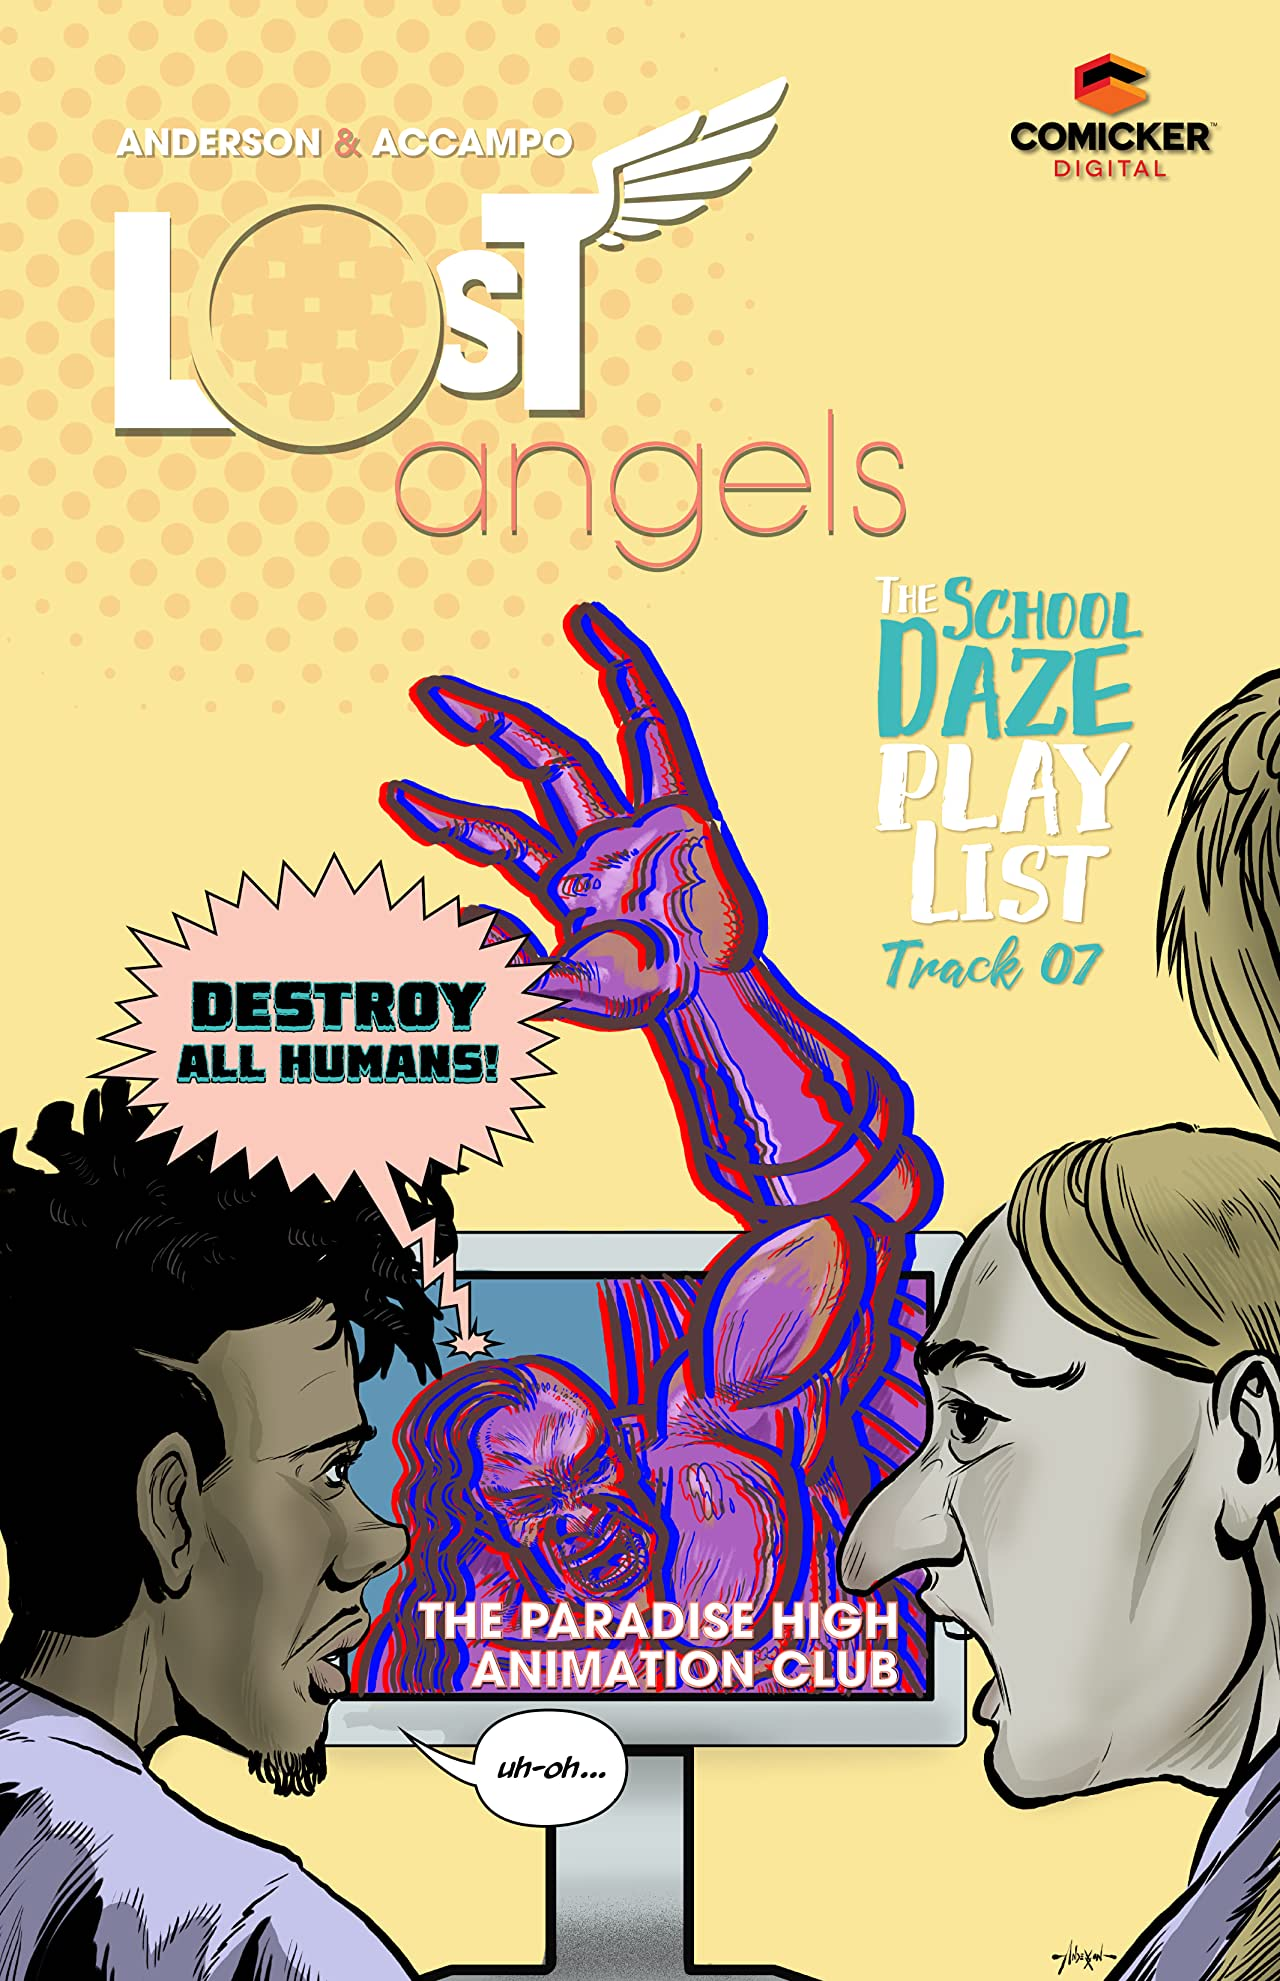 Lost Angels: The School Daze Playlist #7